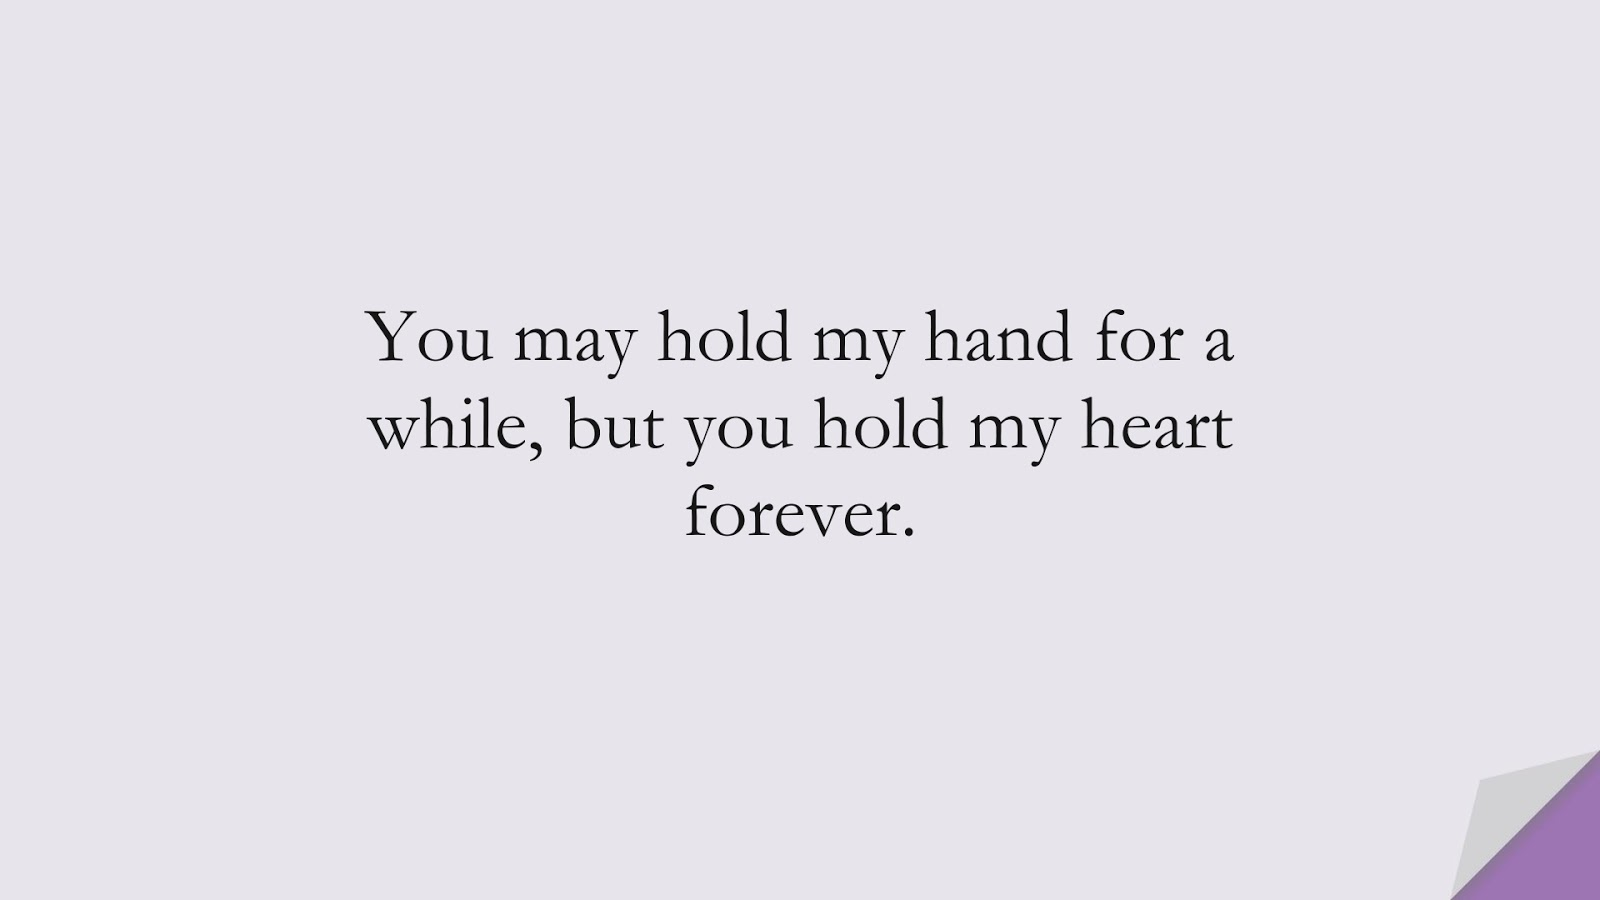 You may hold my hand for a while, but you hold my heart forever.FALSE